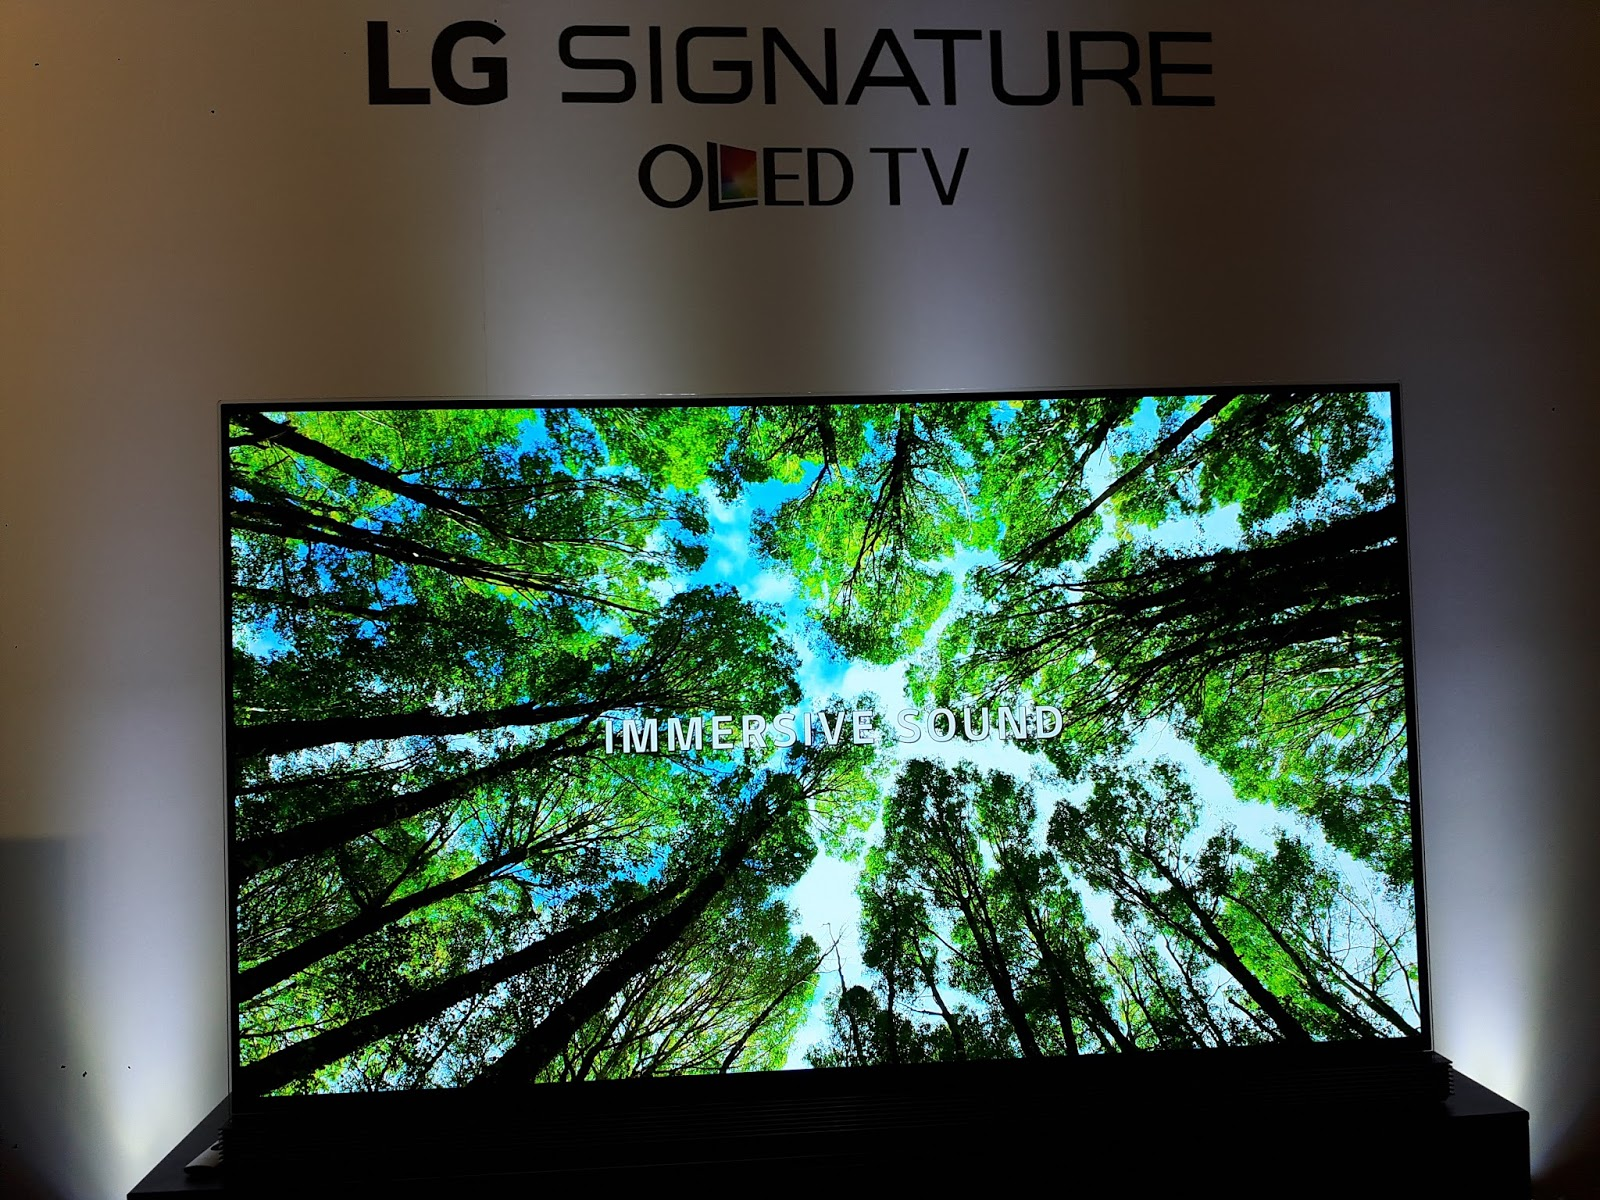 Bloggers Philippines Lg Launches Of 77 Inch Lg Signature Oled Tv